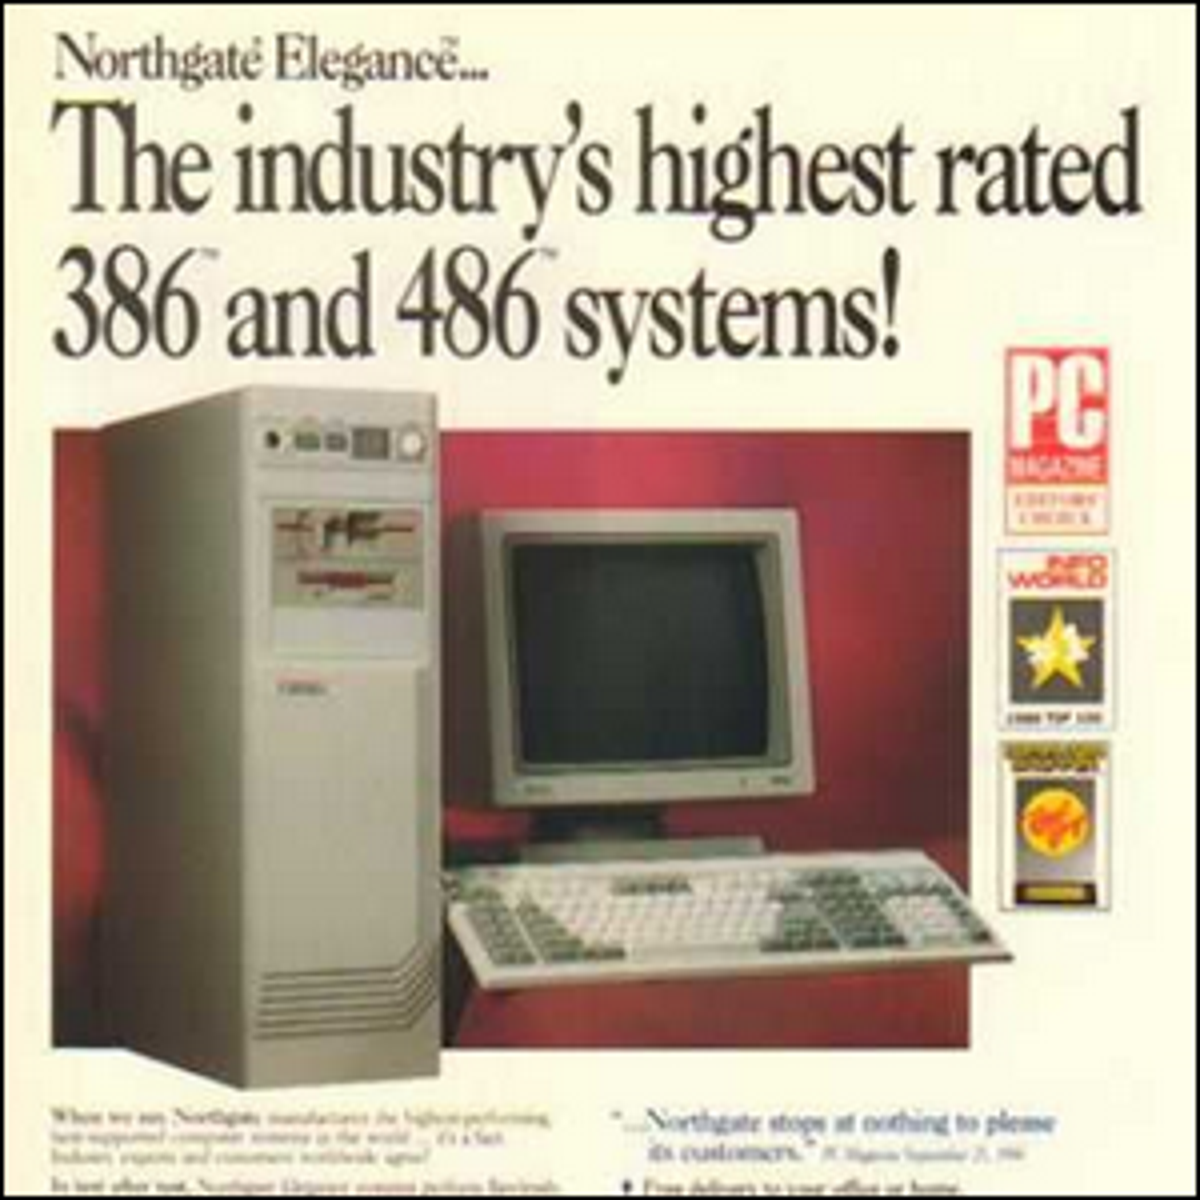 A vintage computer ad for 386 and 486 computers.